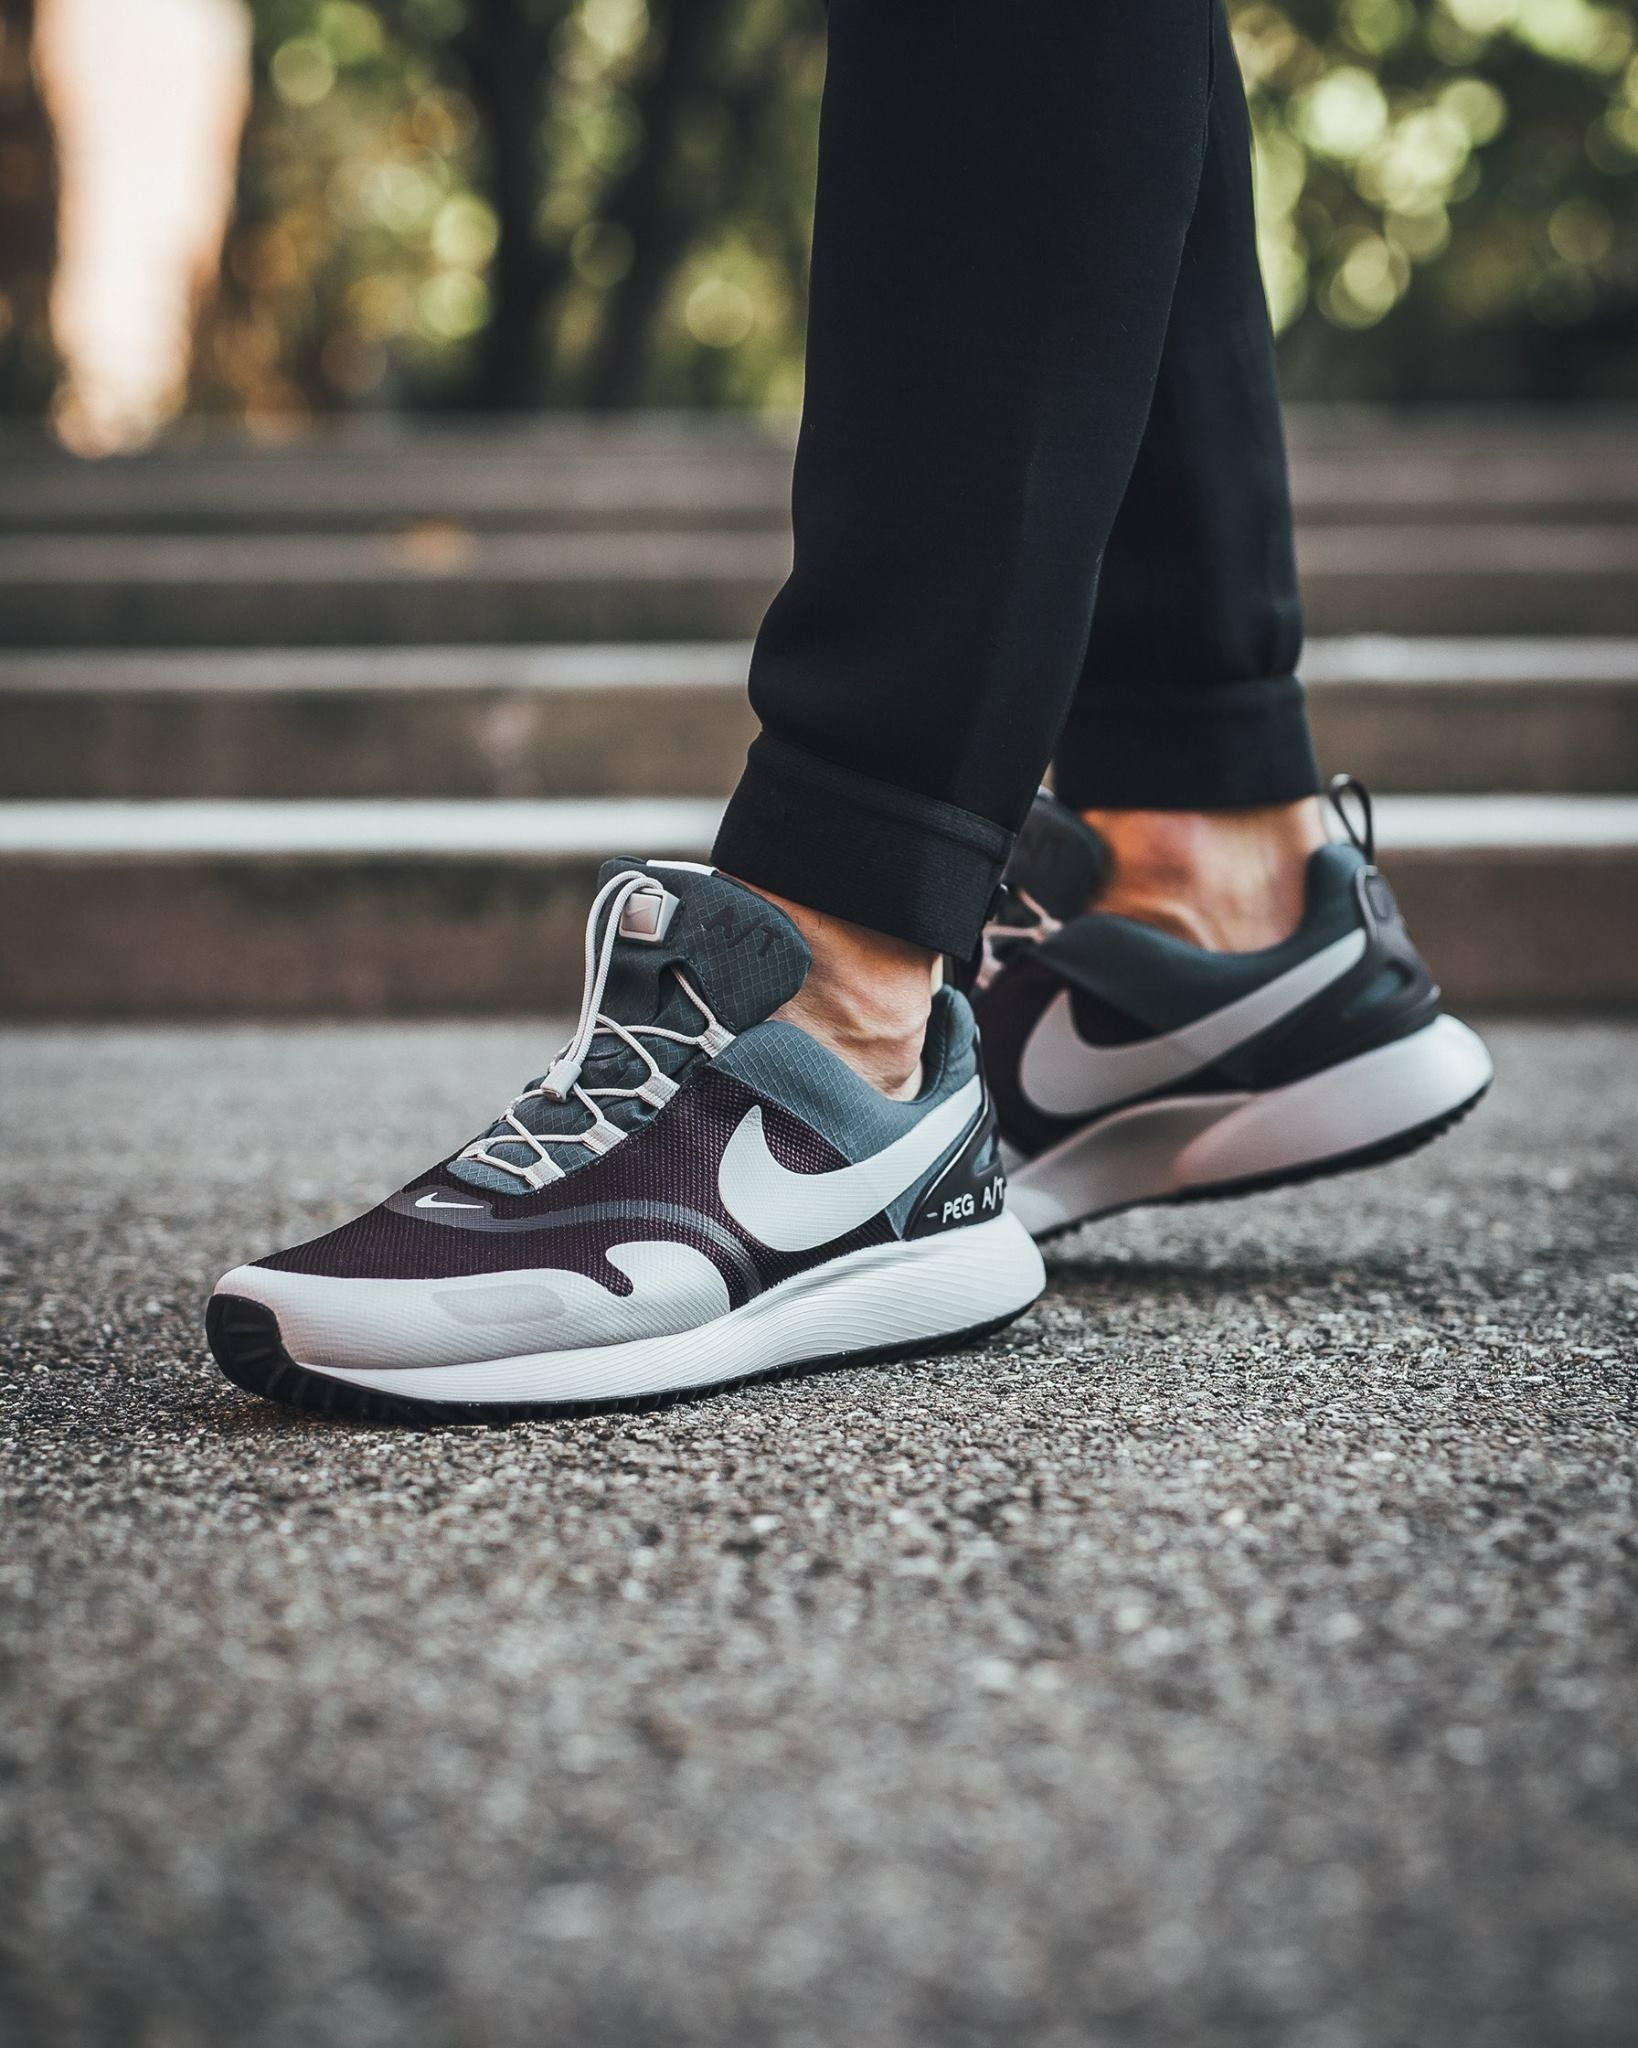 online retailer 92fd2 2f8f1 Nike Air Pegasus All Terrain Winter